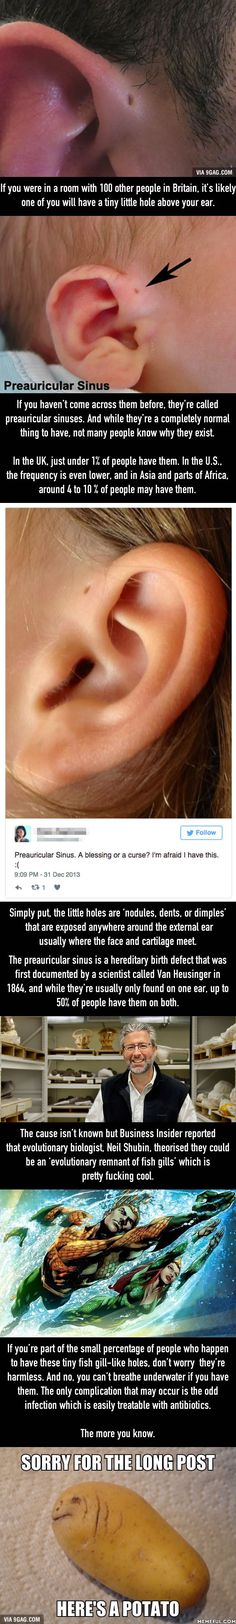 This Is Why Some People Have Those Little Holes Above Their Ears - 9GAG